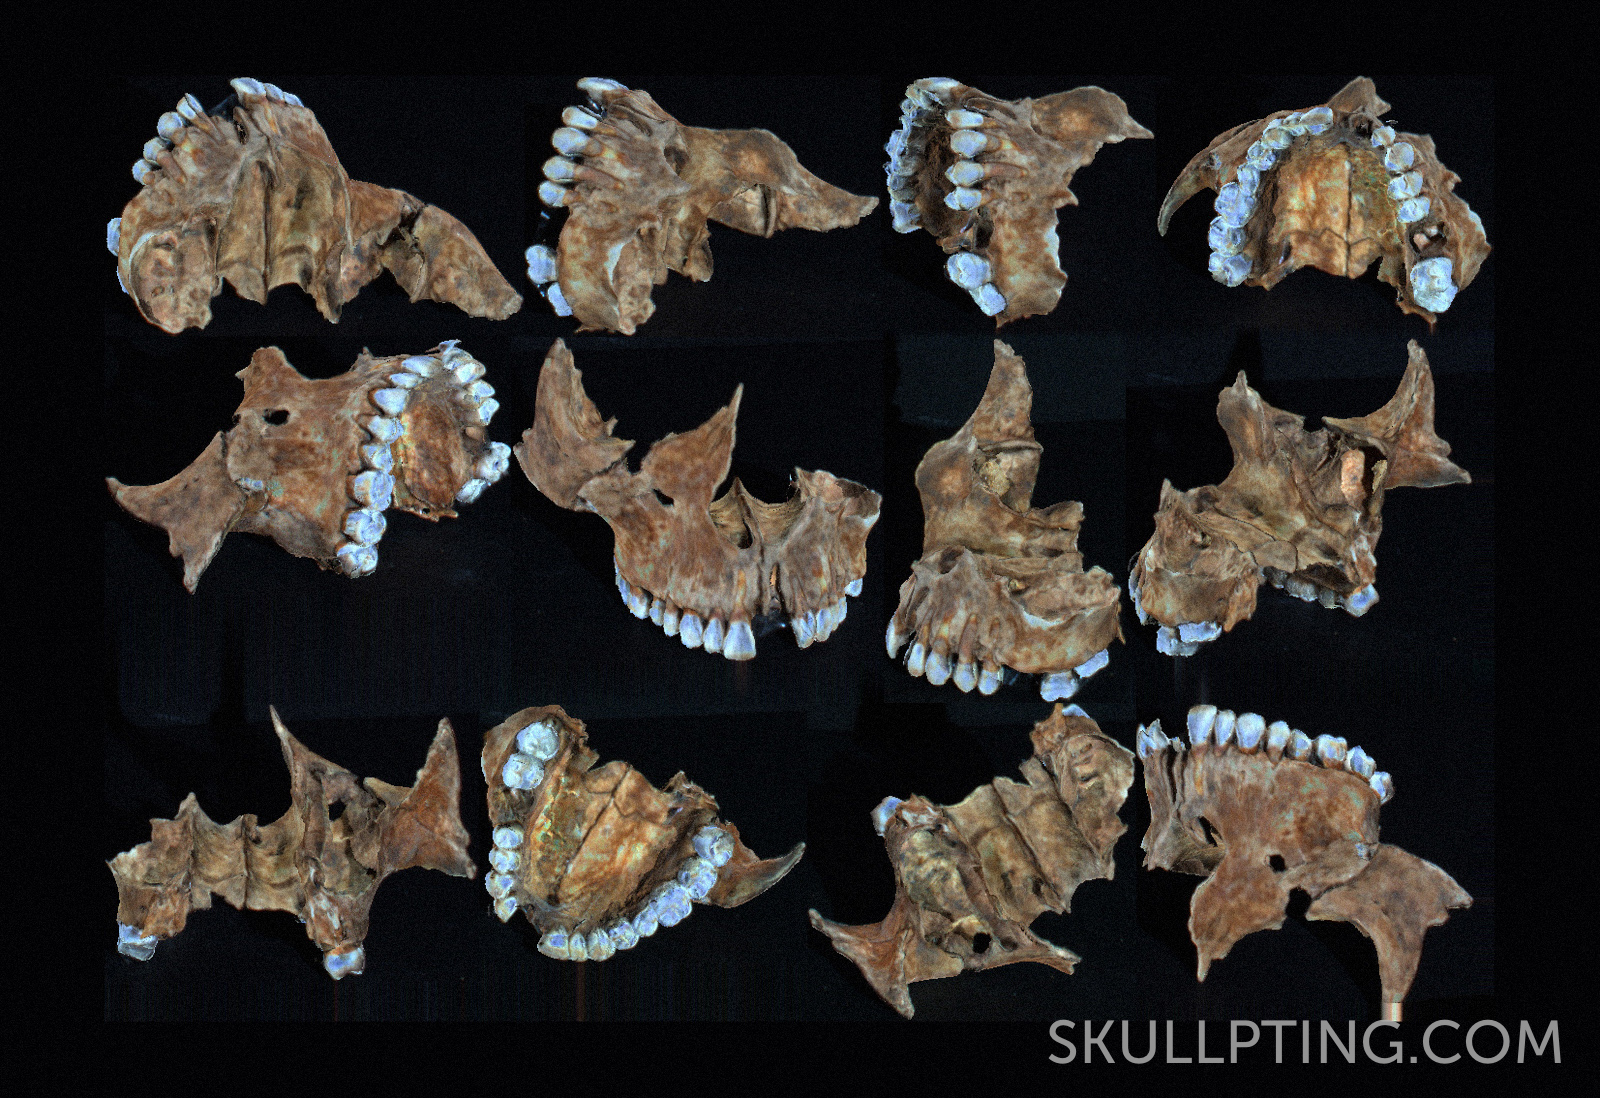 3D scan from the upper jaw. Made by M.H. Sepers, 4D - Research Lab.